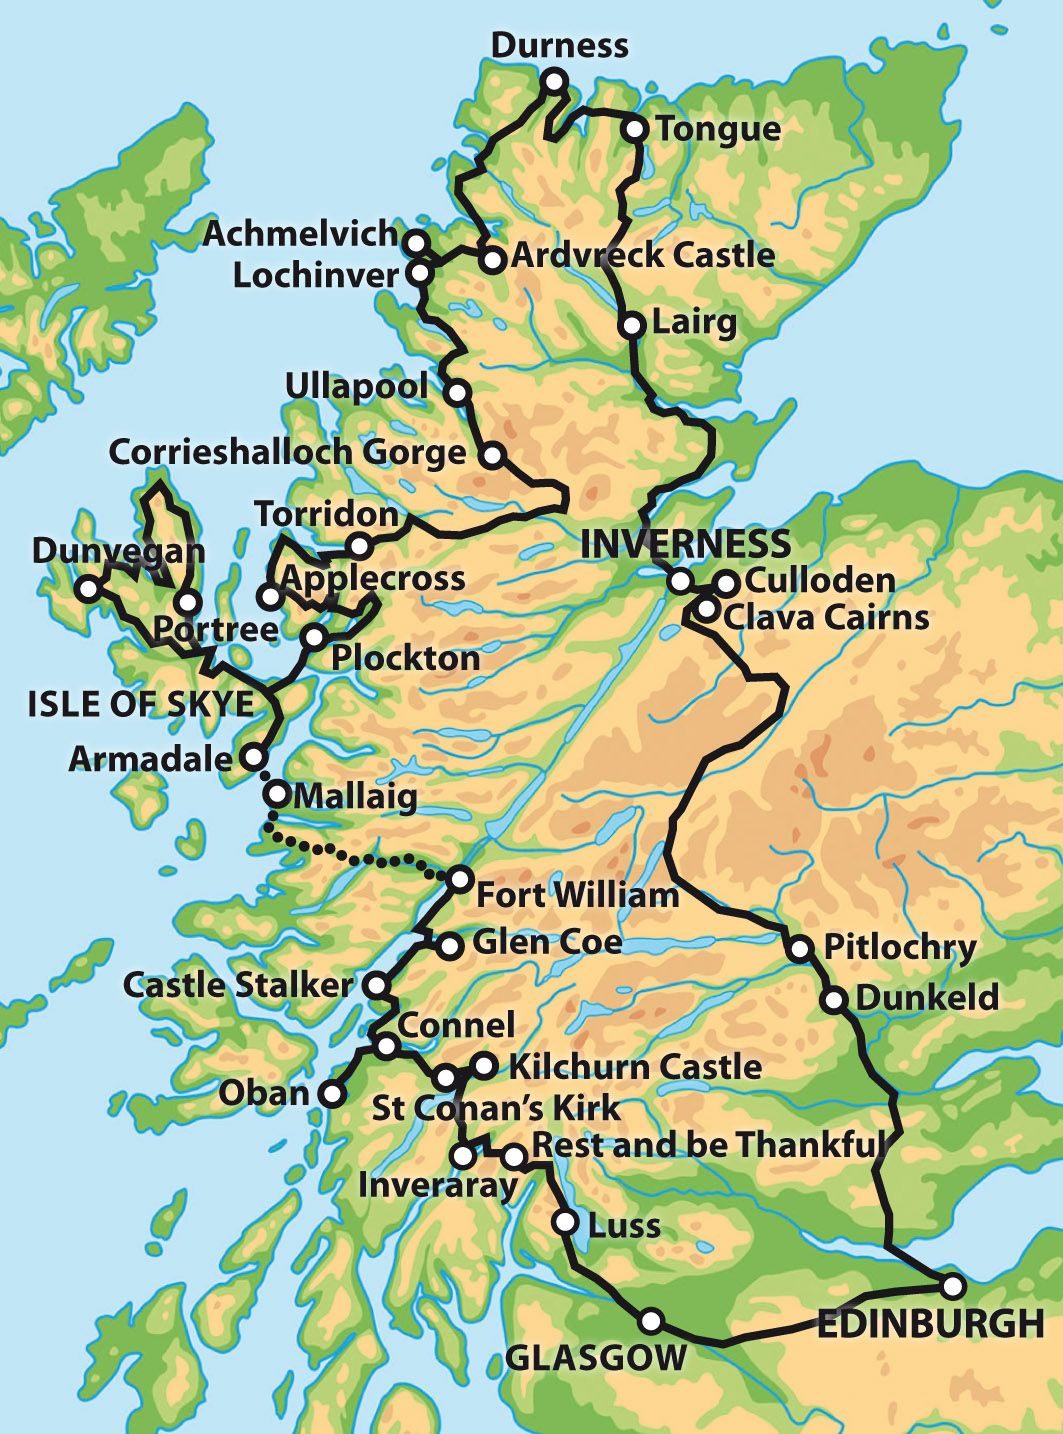 Pitlochry Scotland Map.Private 7 Day Tour The Complete Tour Of Scotland Map Road Trips